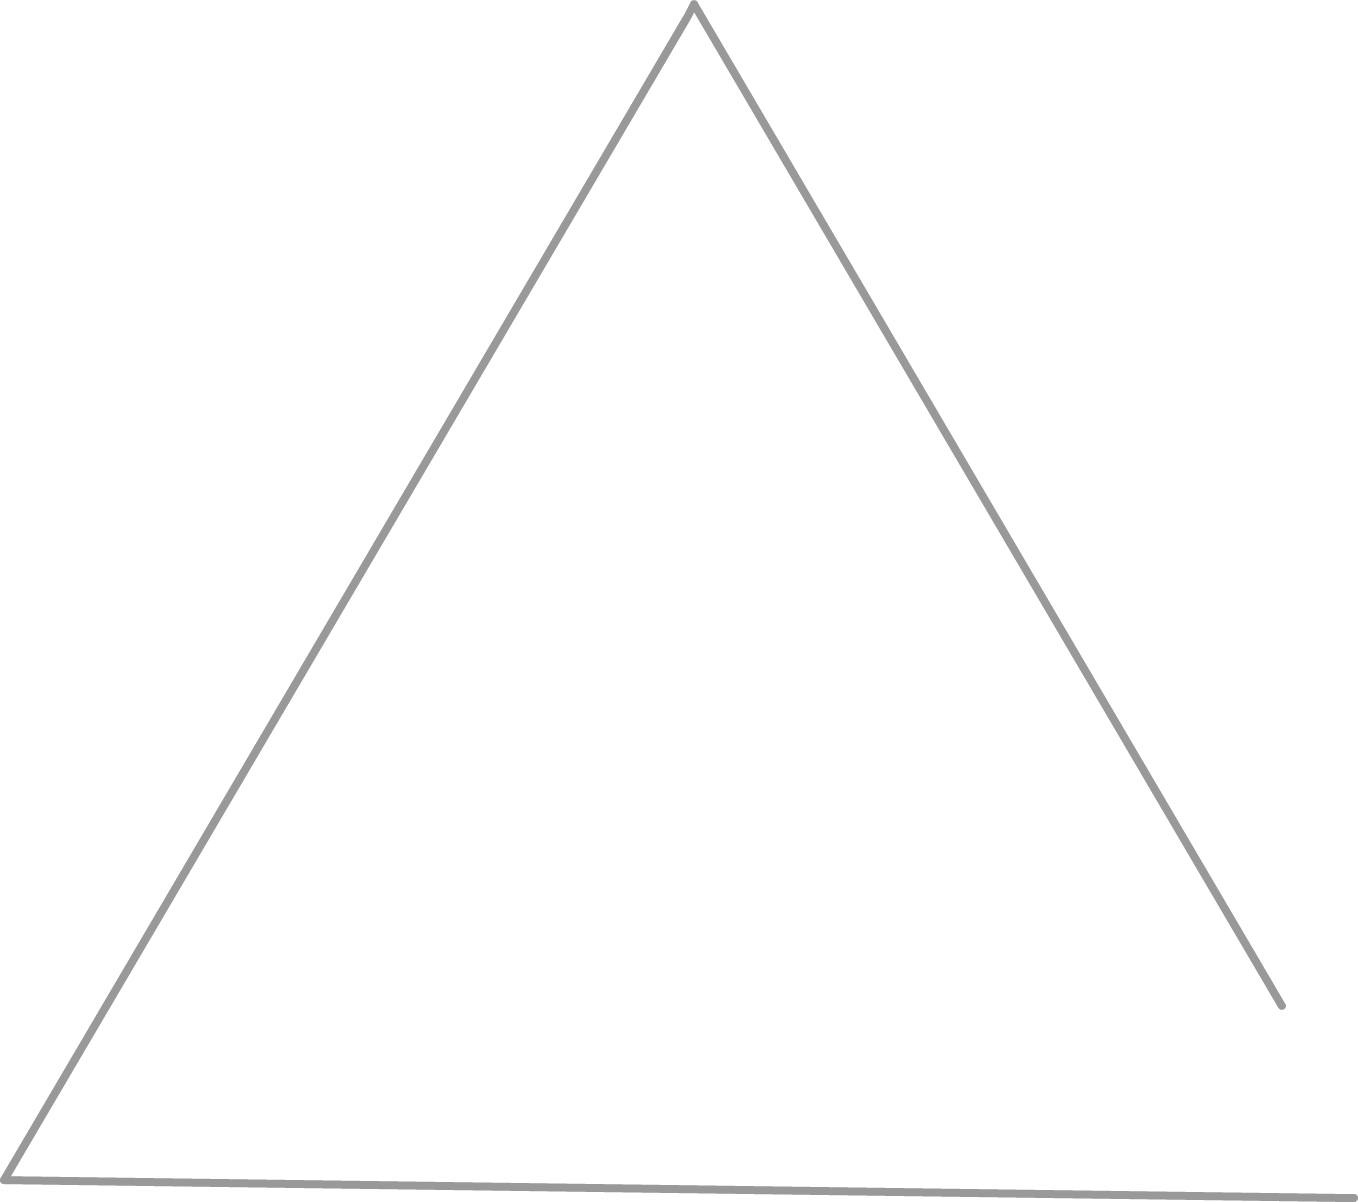 Triangle Free Download PNG Image